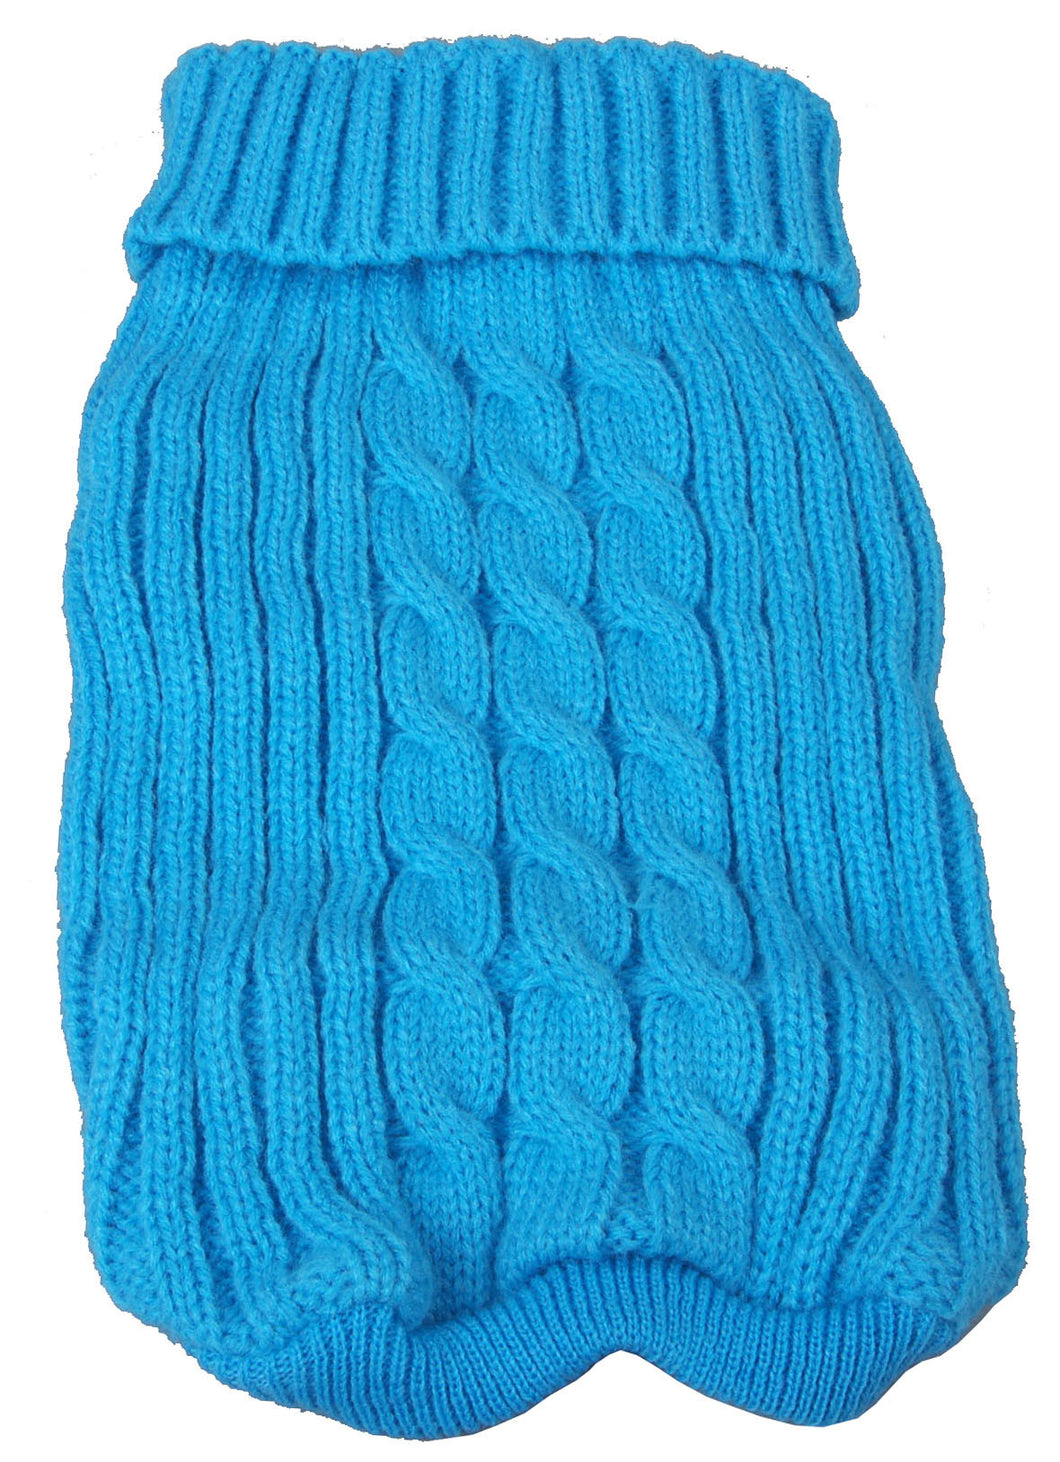 Heavy Cotton Rib-Collared Pet Sweater- Light Blue: X-Small